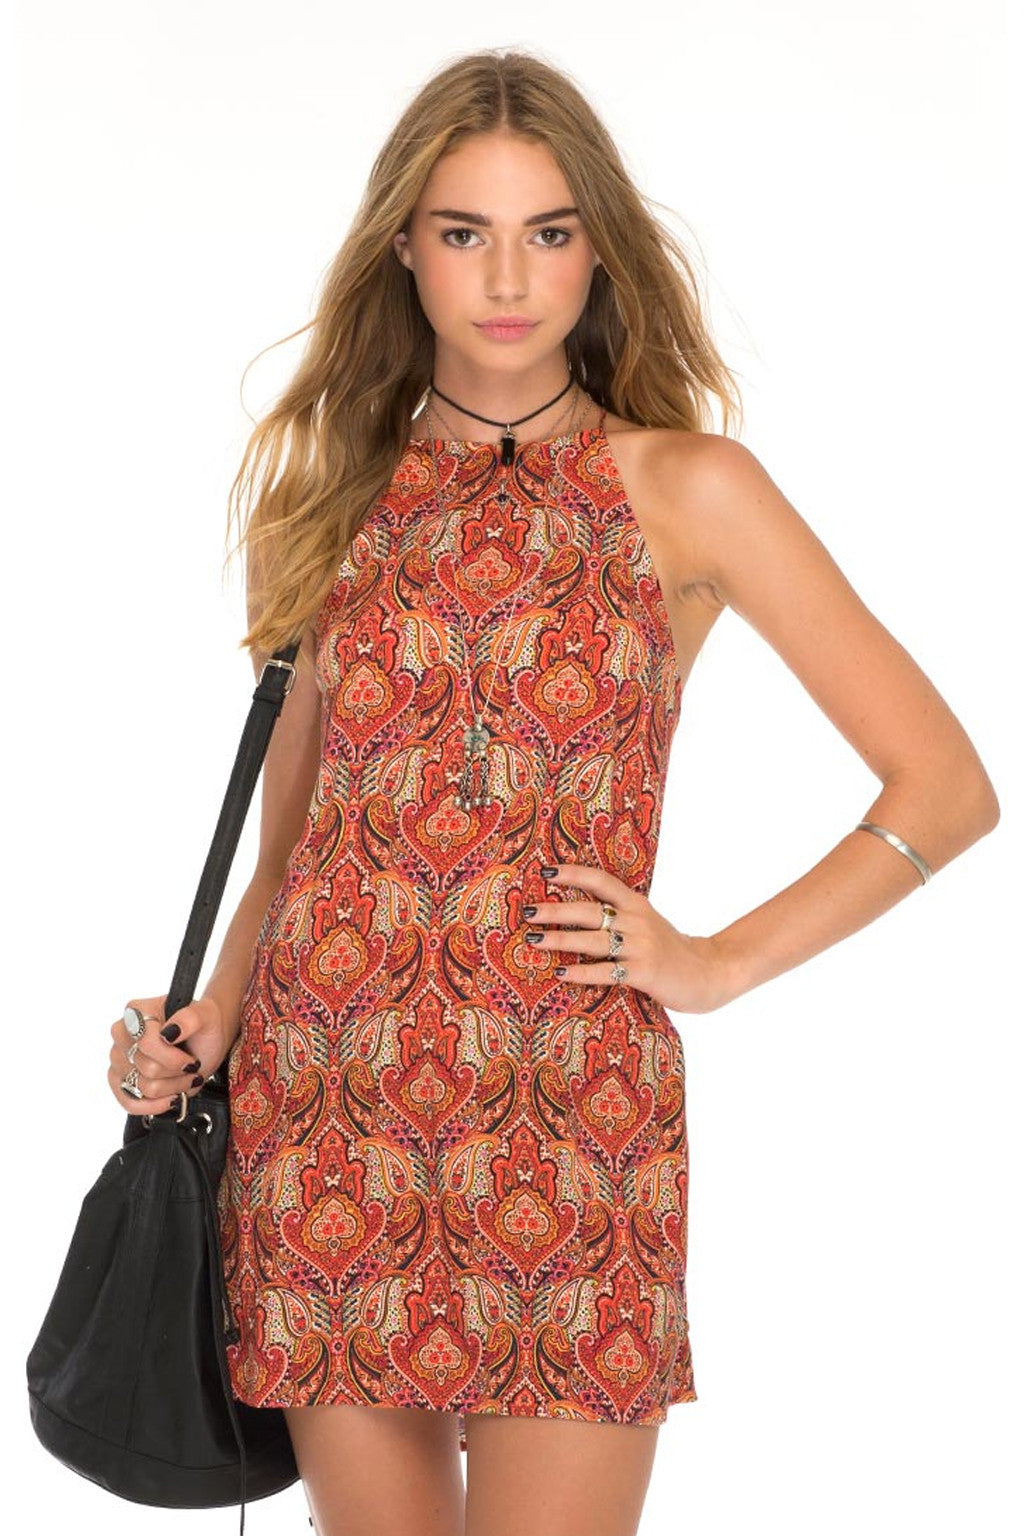 Zella Stone: Dress - Printed Slip Dress - Motel